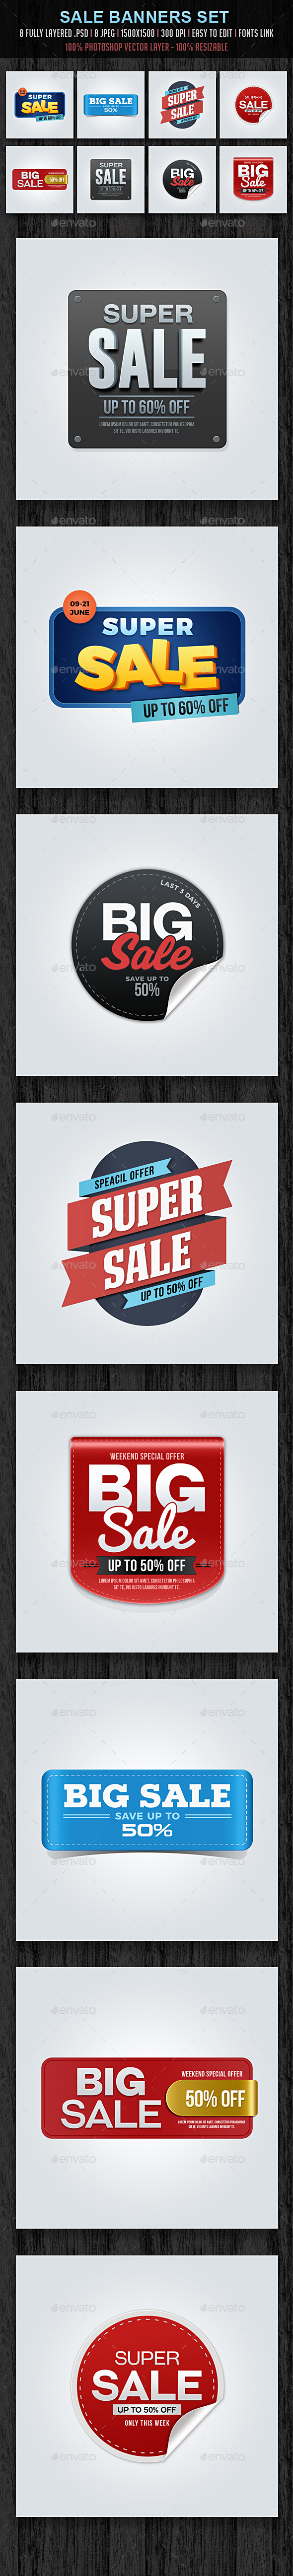 Sale Banners Set - Banners & Ads Web Elements